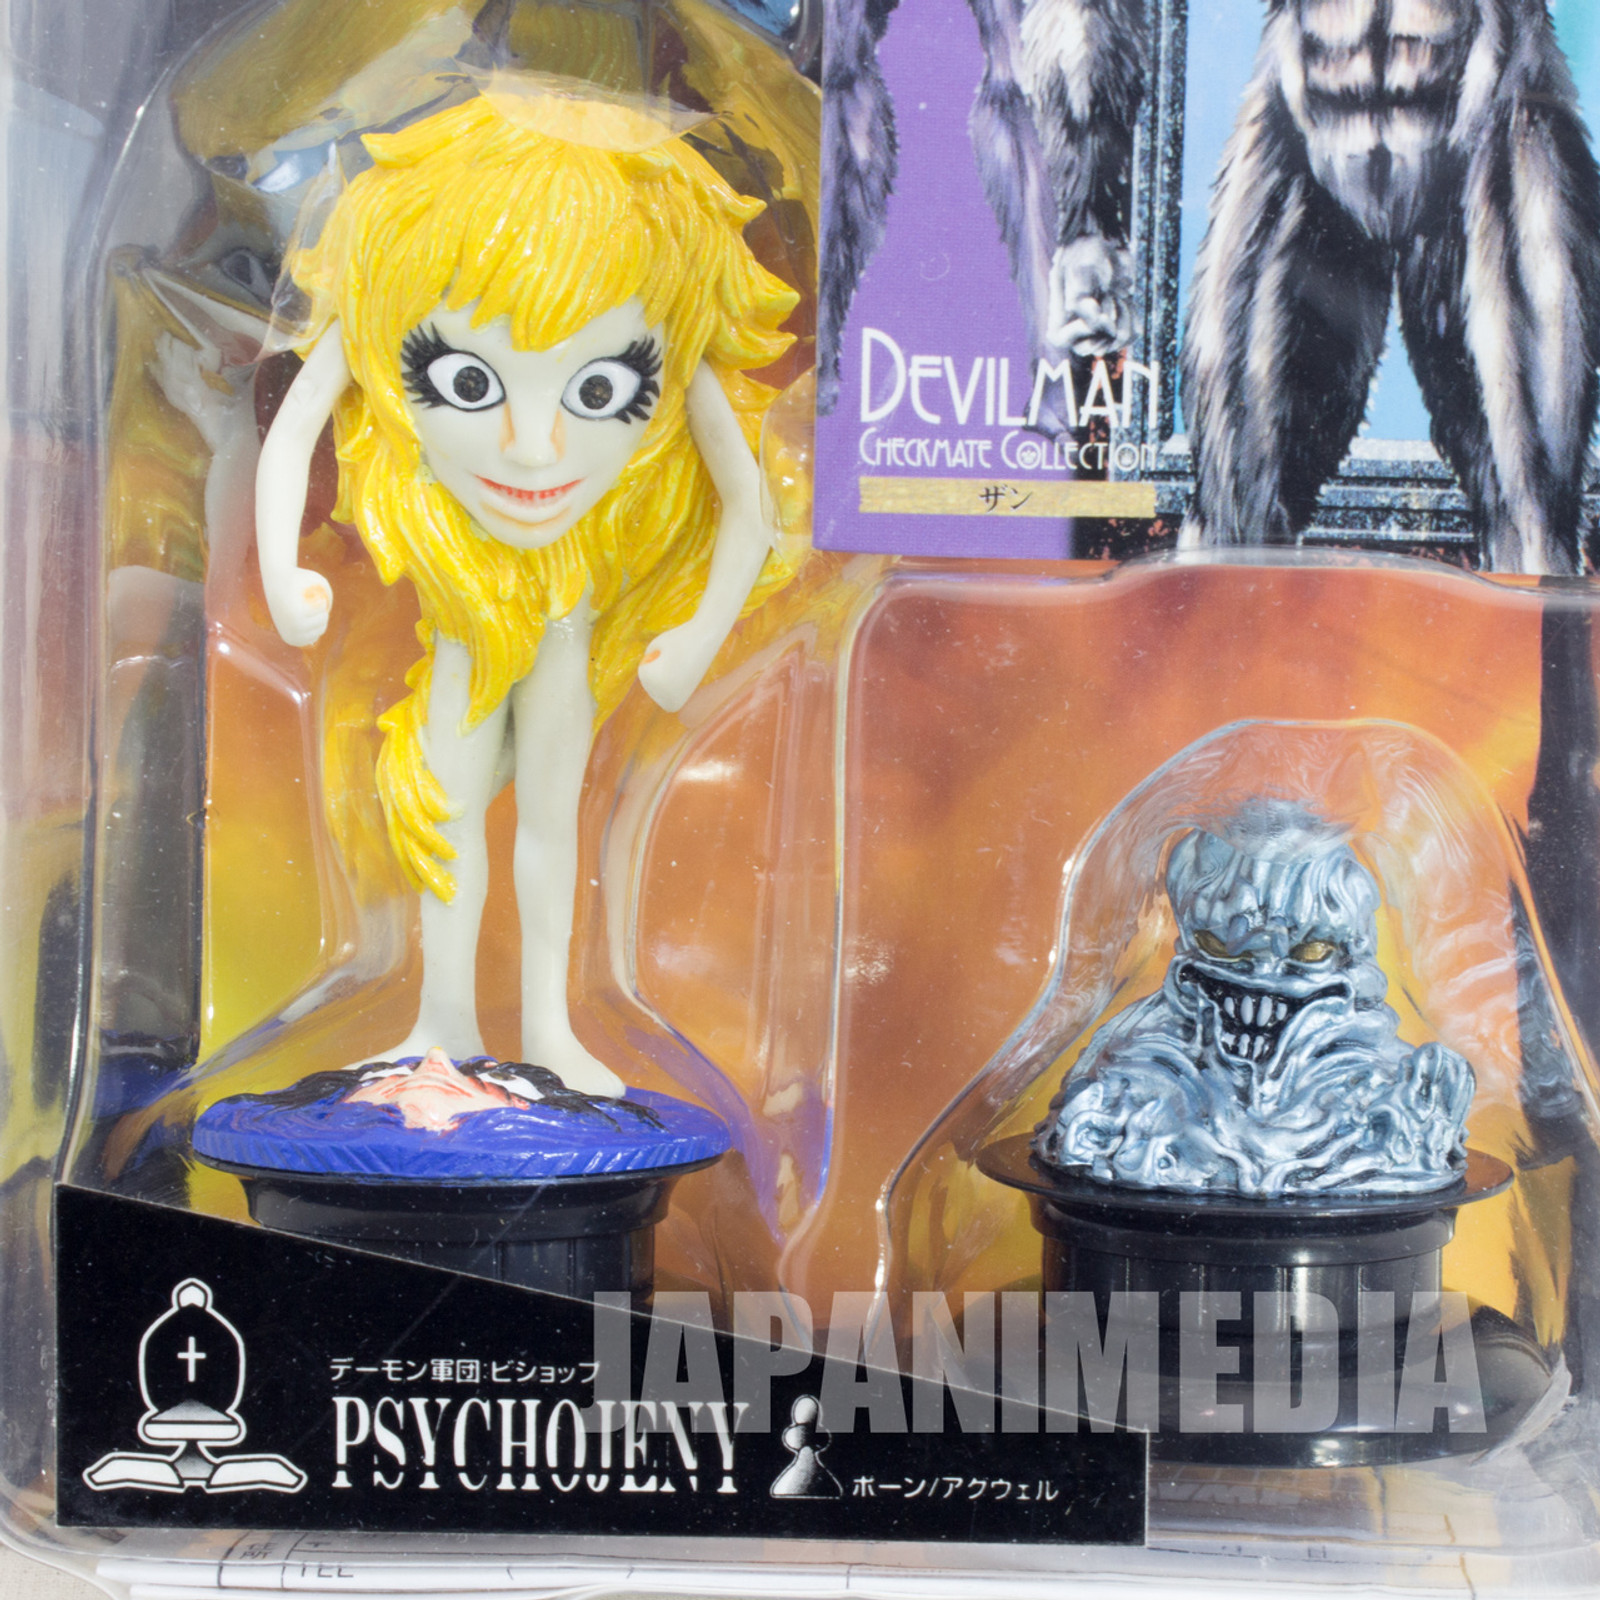 Devilman Checkmate Collection Figure PsychoJeny Nagai Go Moby Dick JAPAN